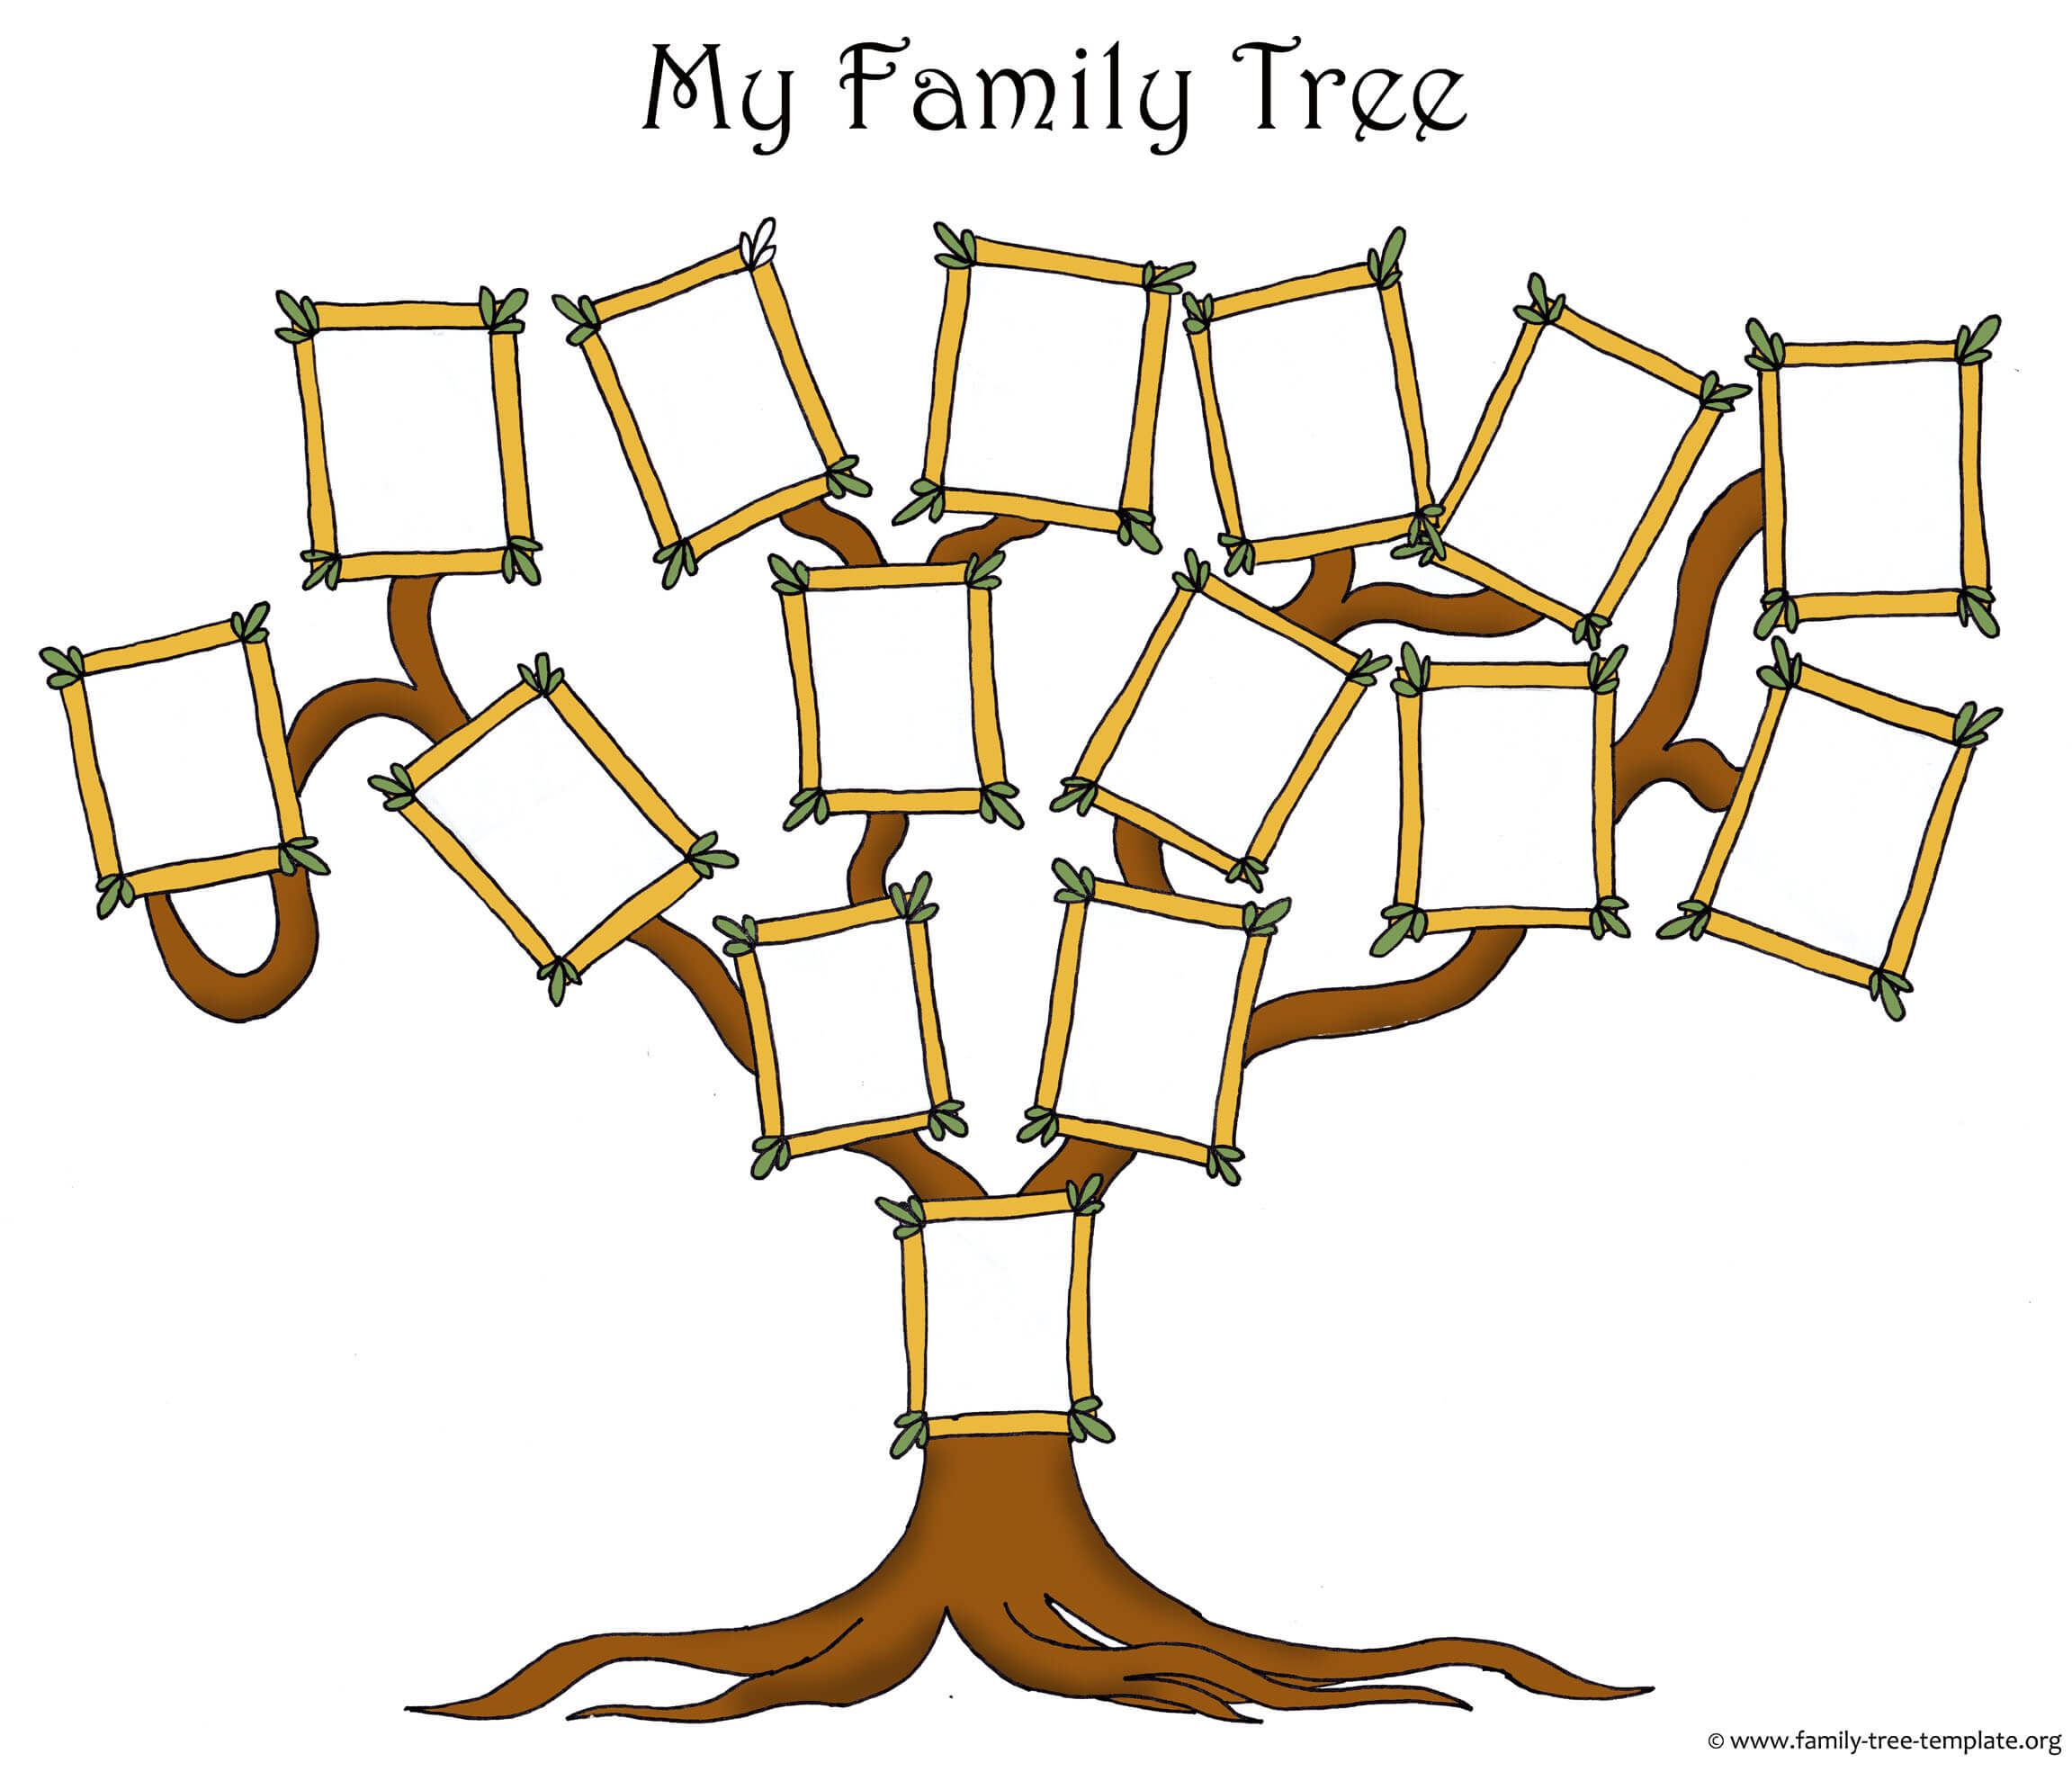 Free Family Tree Template Designs For Making Ancestry Charts with regard to Blank Family Tree Template 3 Generations